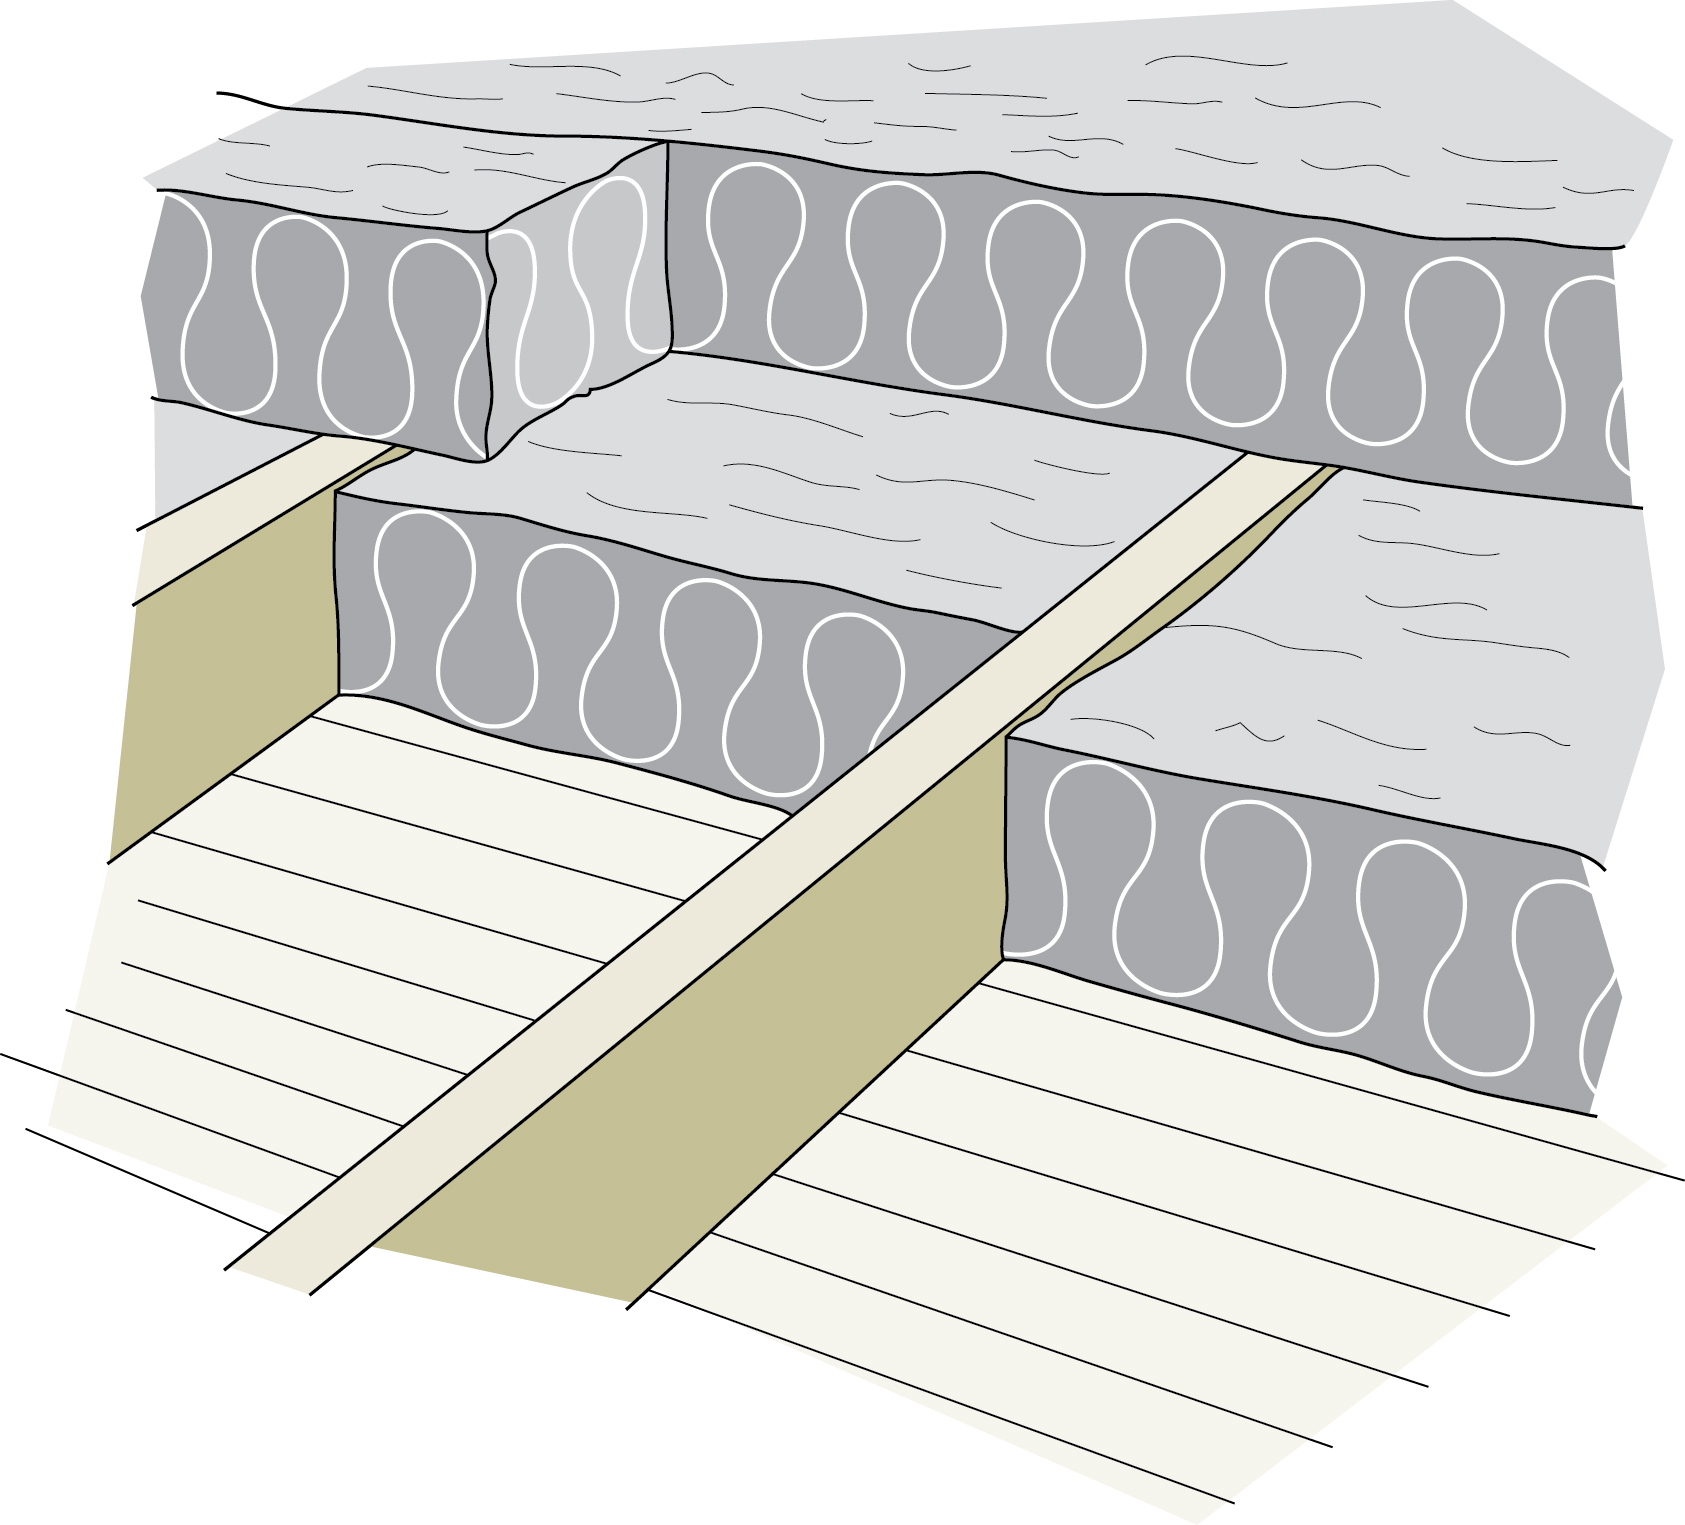 Figure 5-13 The top layer of insulation runs perpendicular to the bottom layer